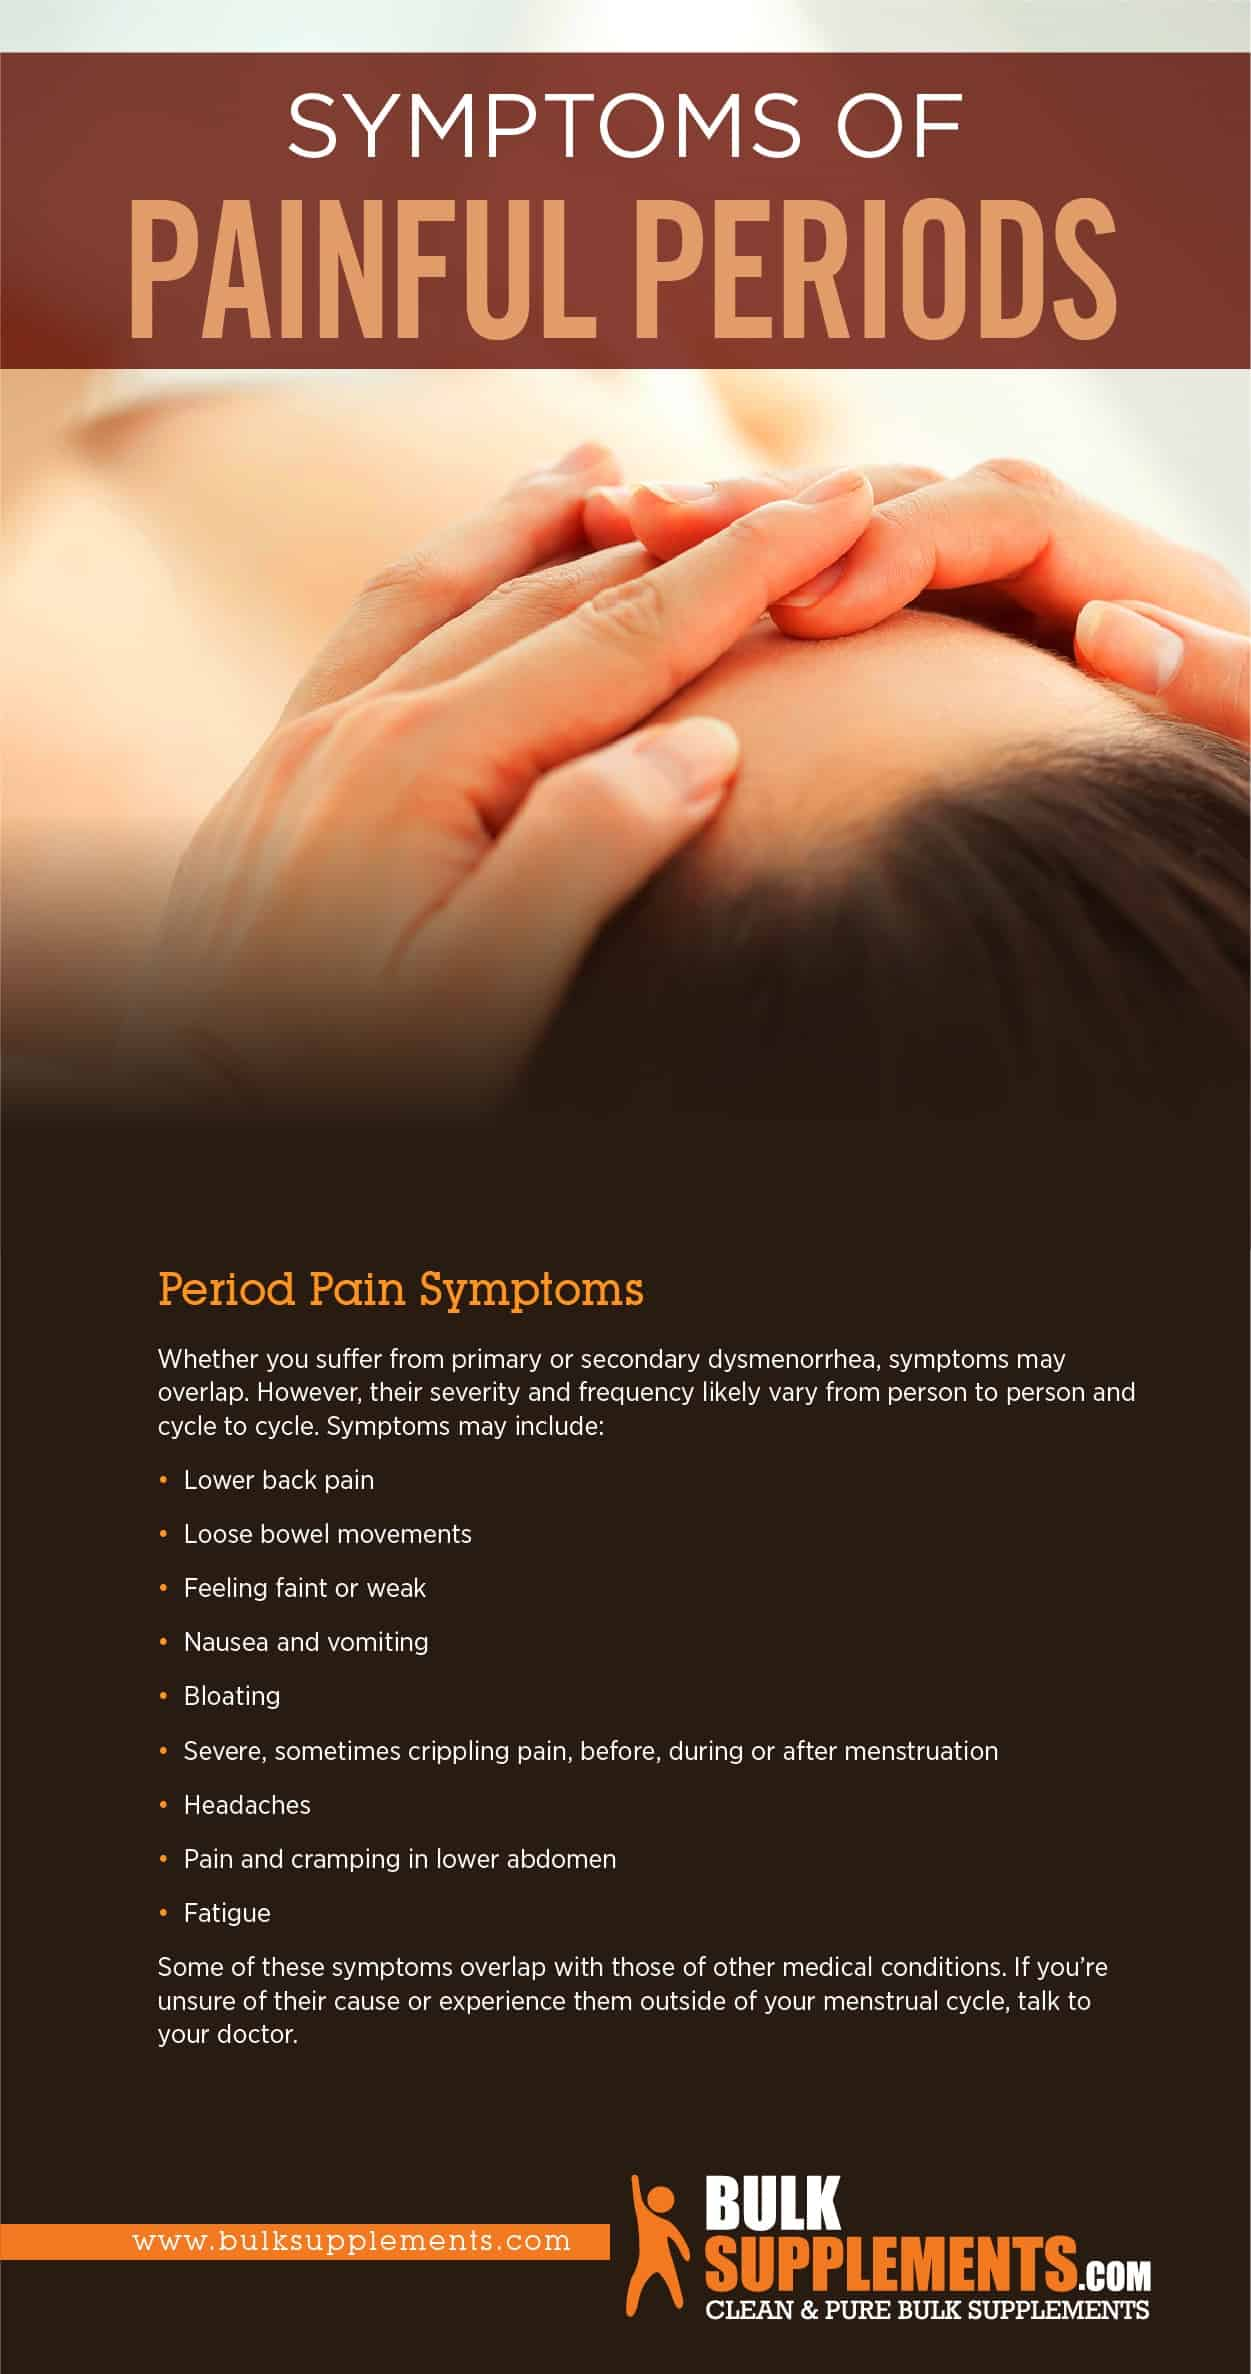 Painful Periods Symptoms